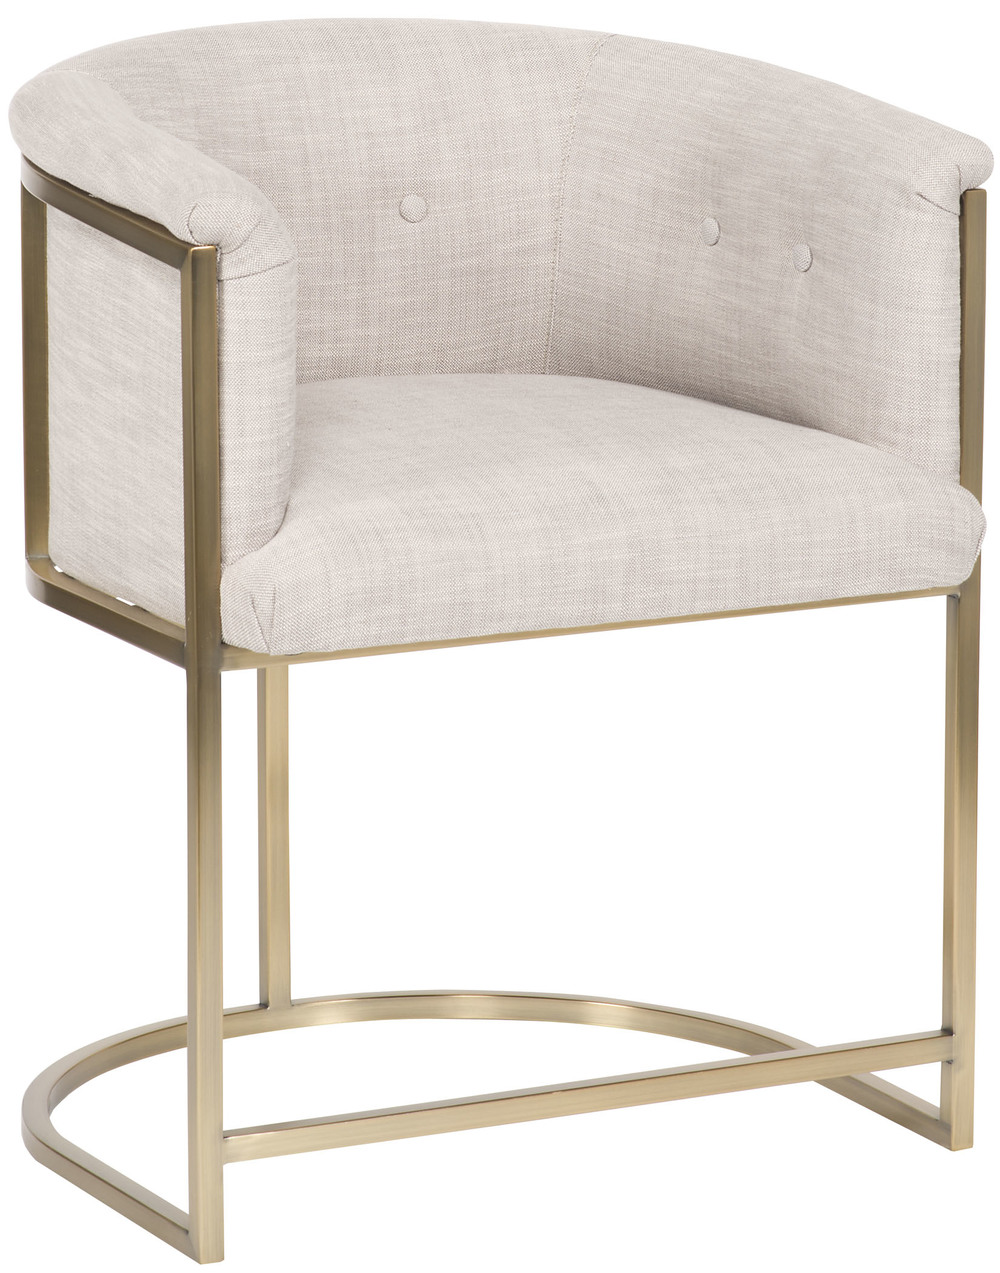 VANGUARD FURNITURE COMPANY - Skye Button Back Metal Frame Chair